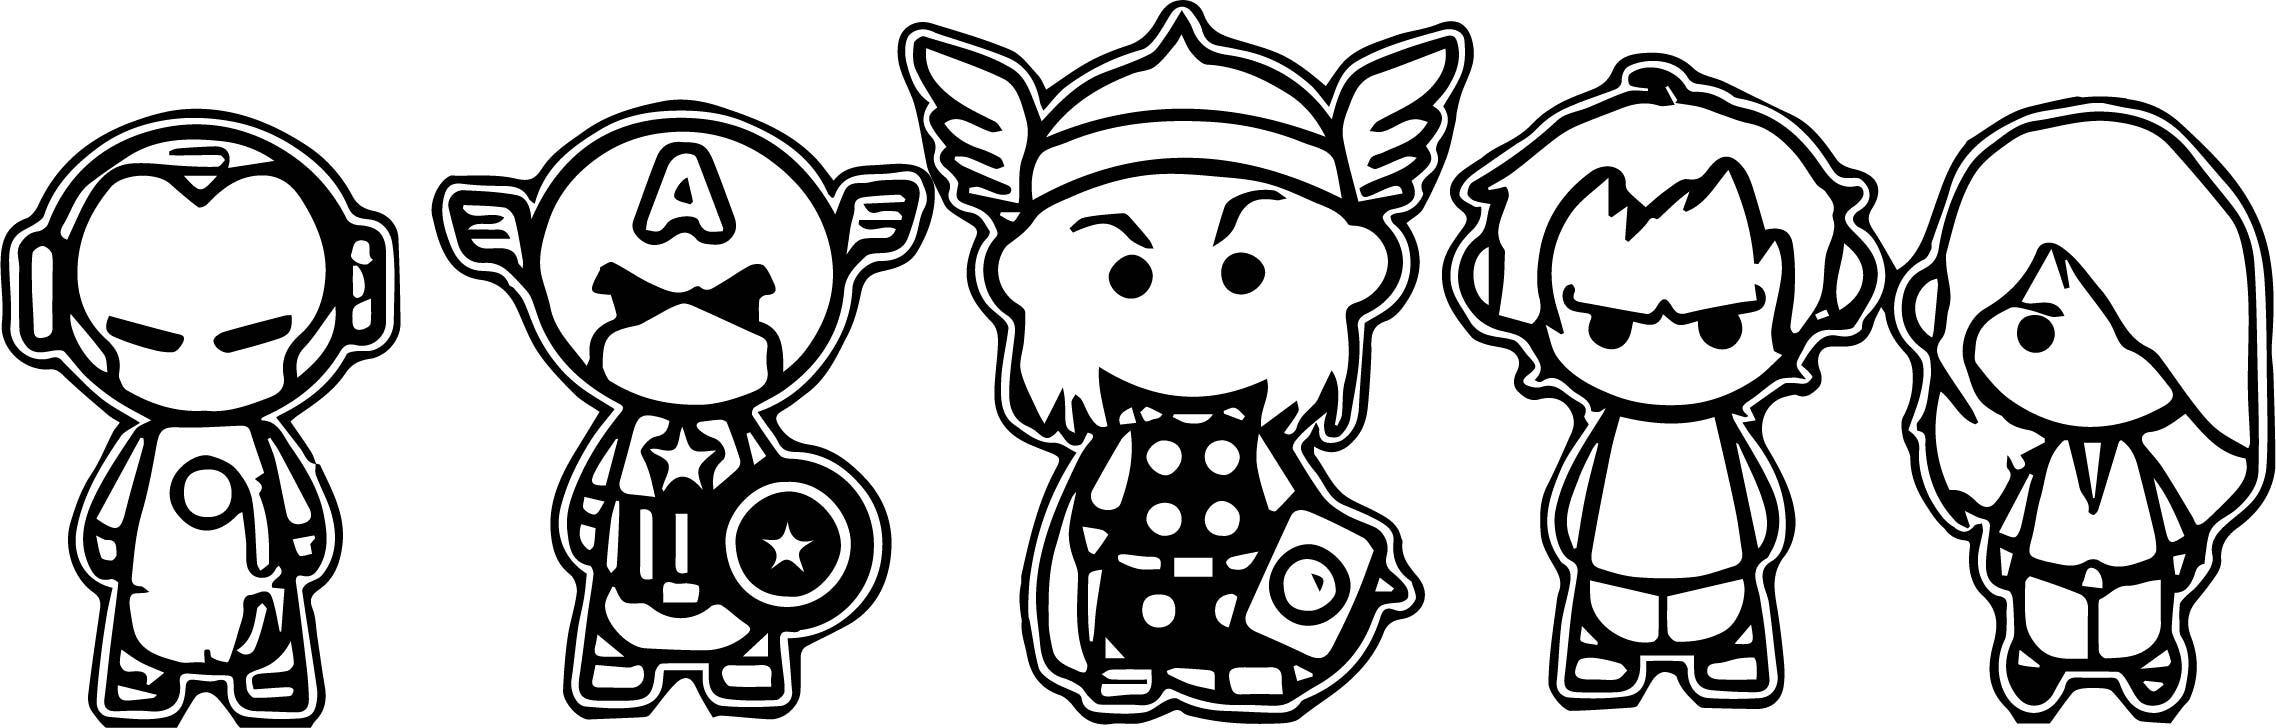 Avengers Chibi Side Coloring Page